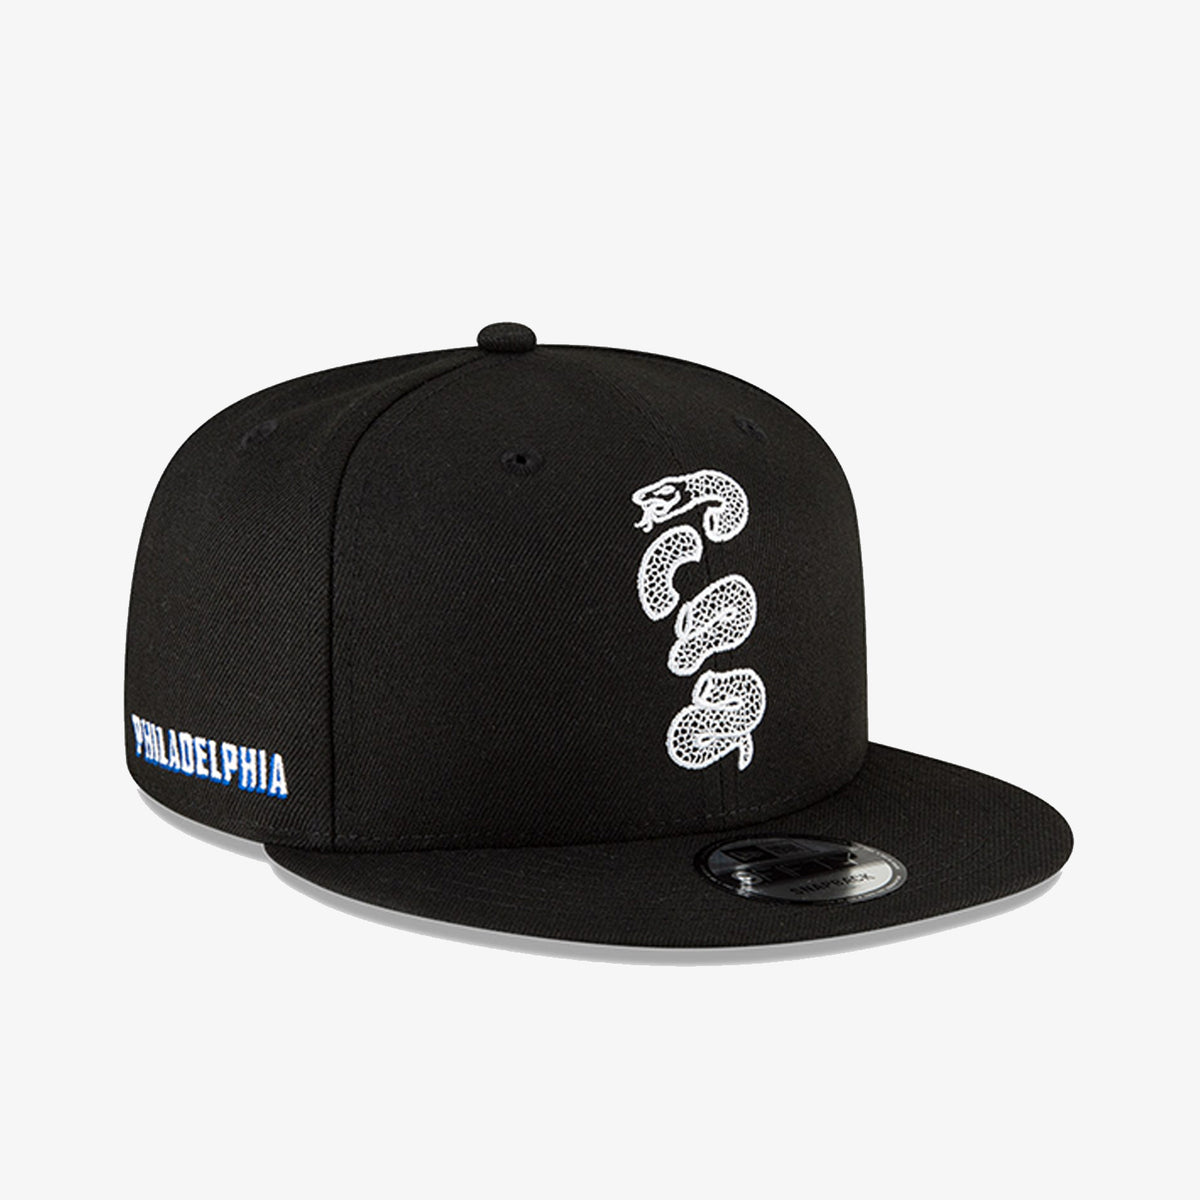 Philadelphia 76ers City Edition 950 Snapback - Black